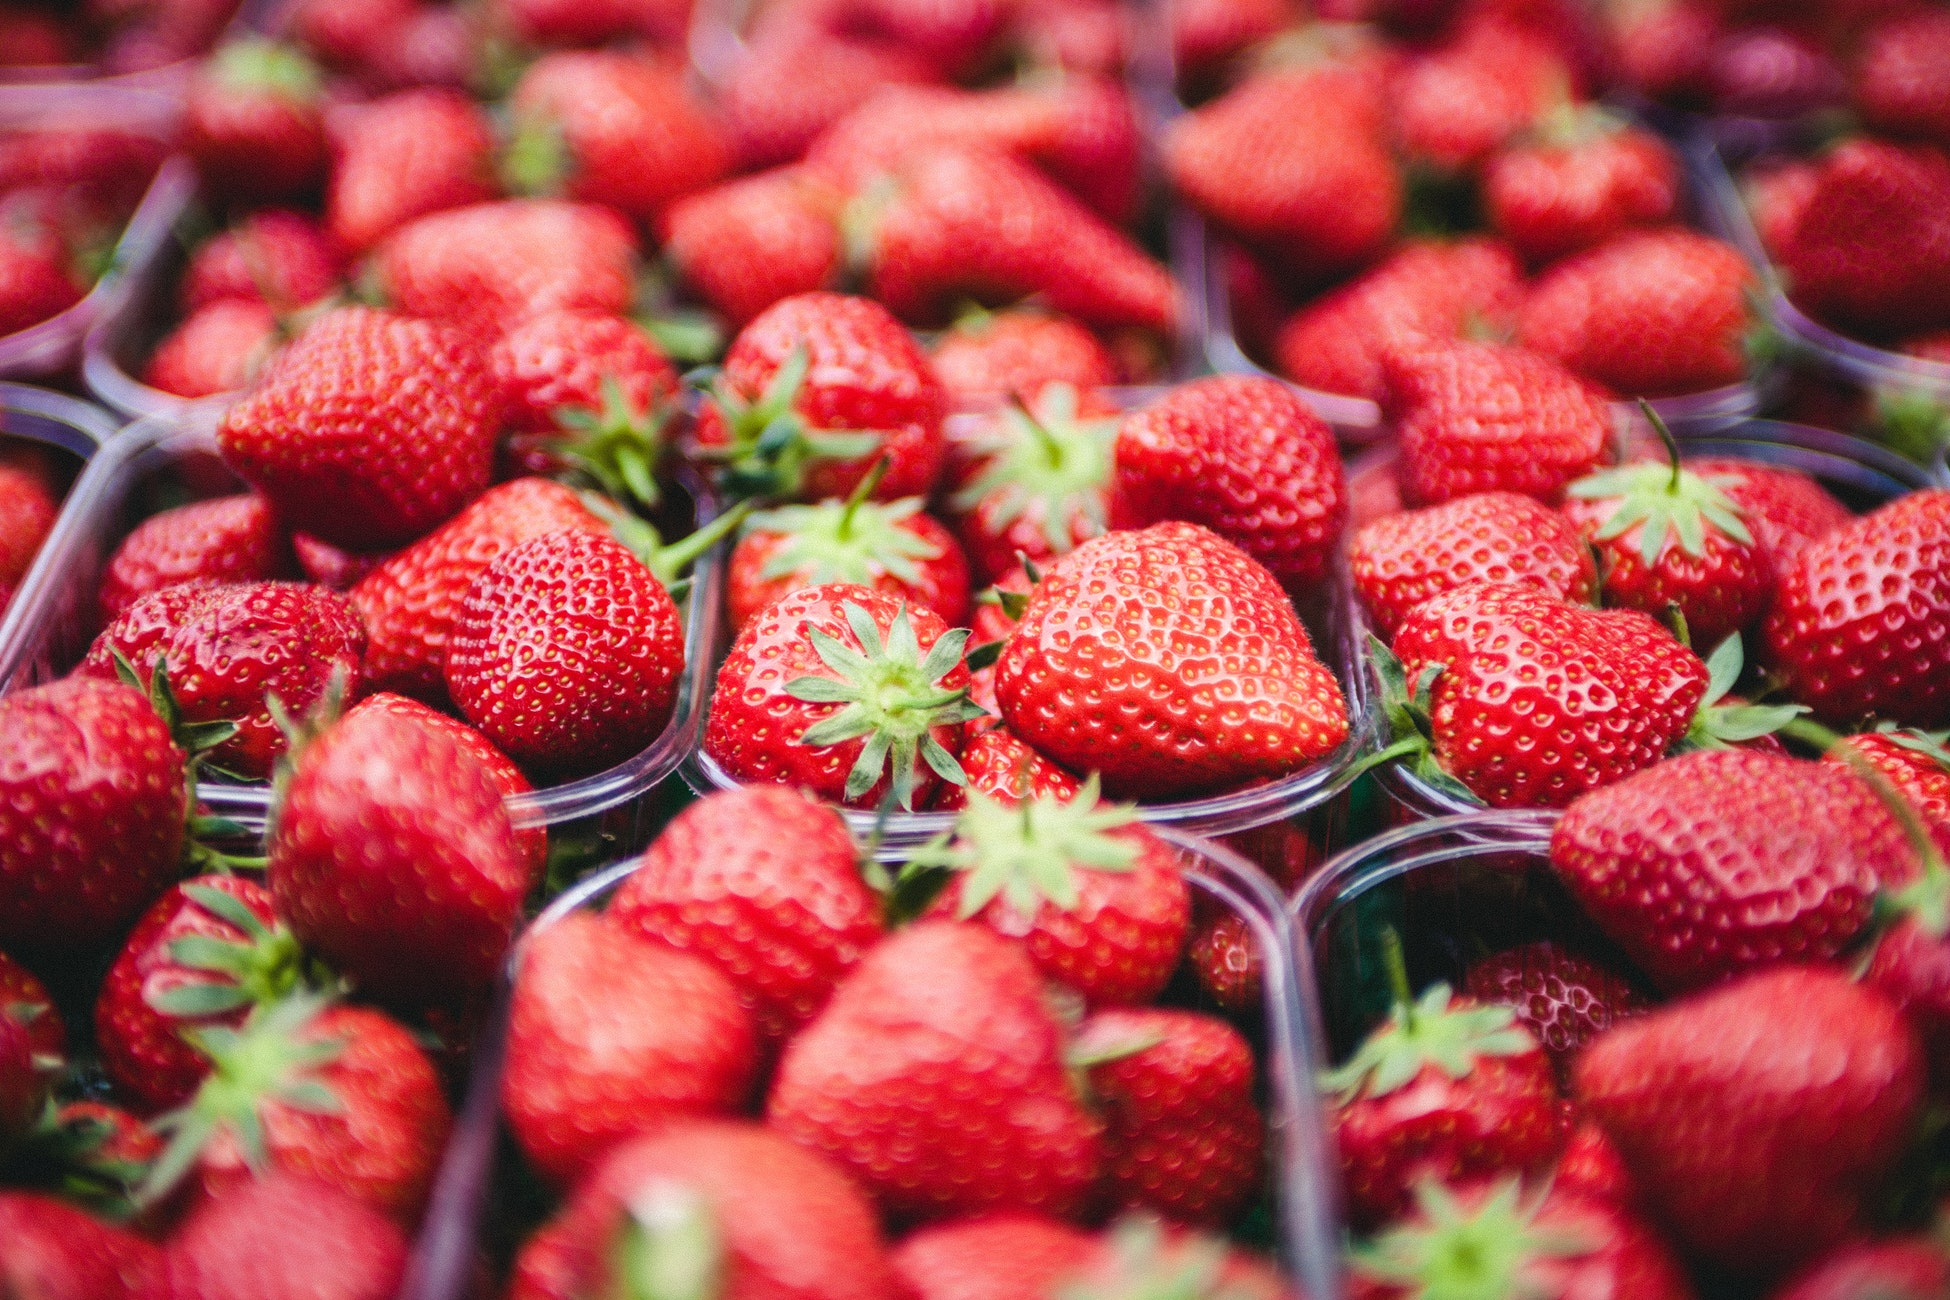 It's always worth finding local fresh berries!